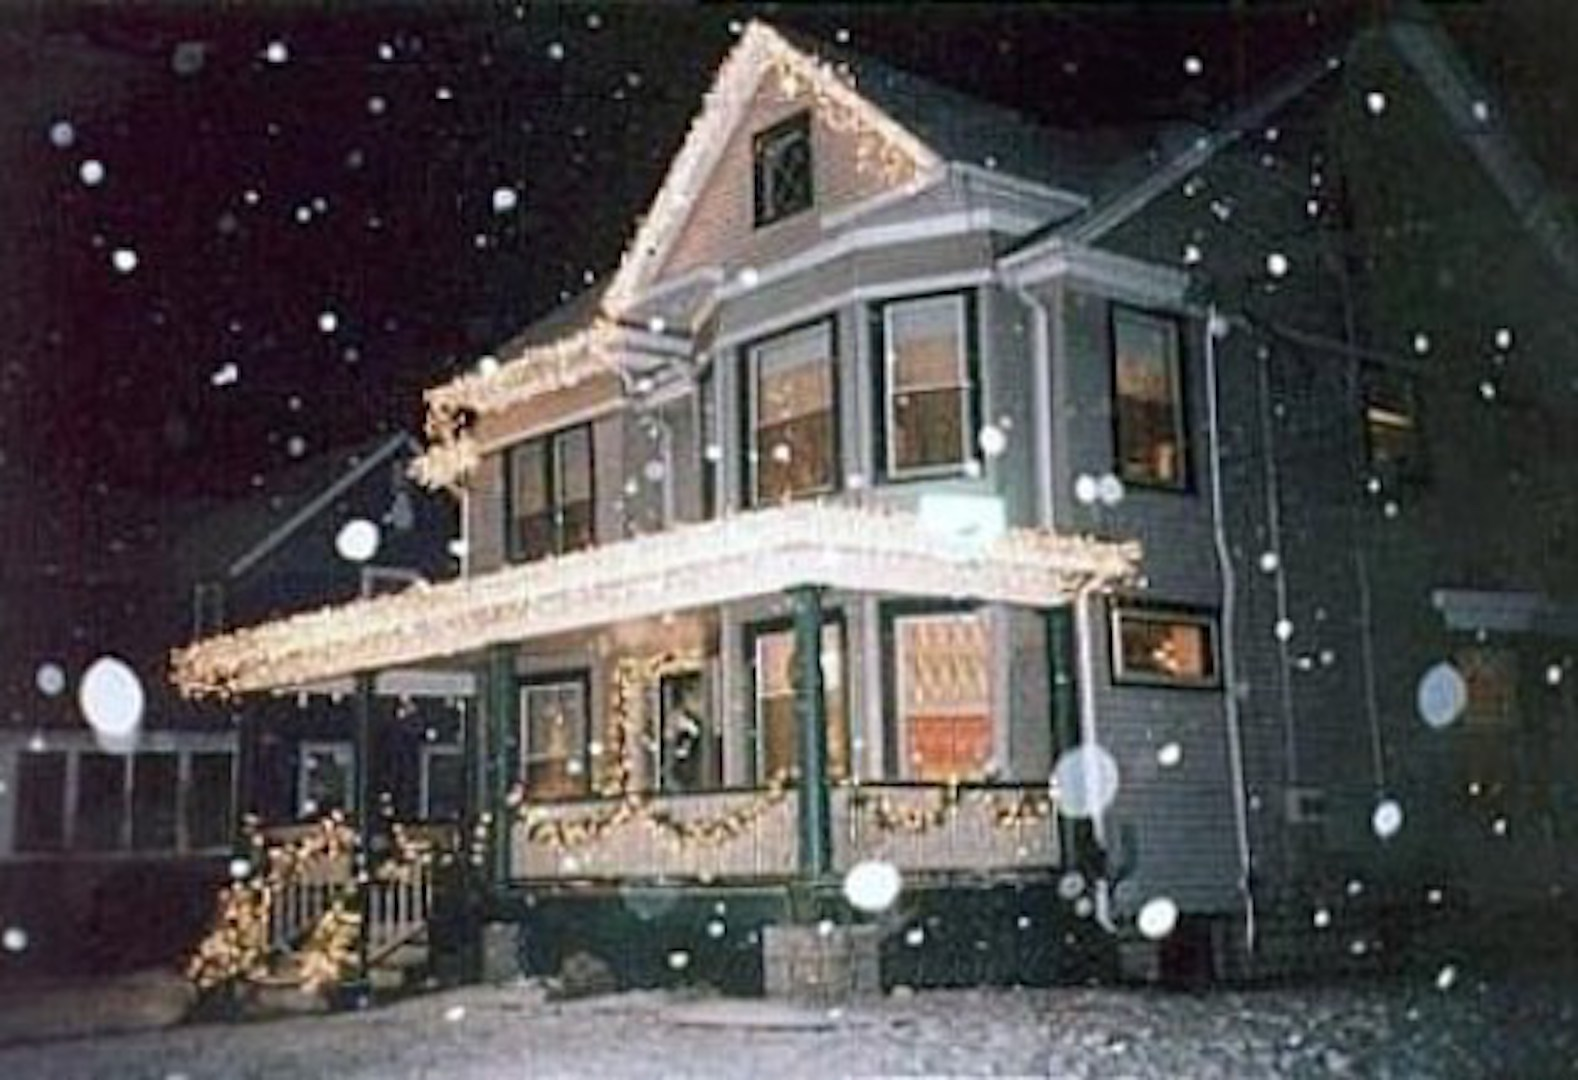 A train is parked on the side of a building at Gilded Swan Bed & Breakfast.